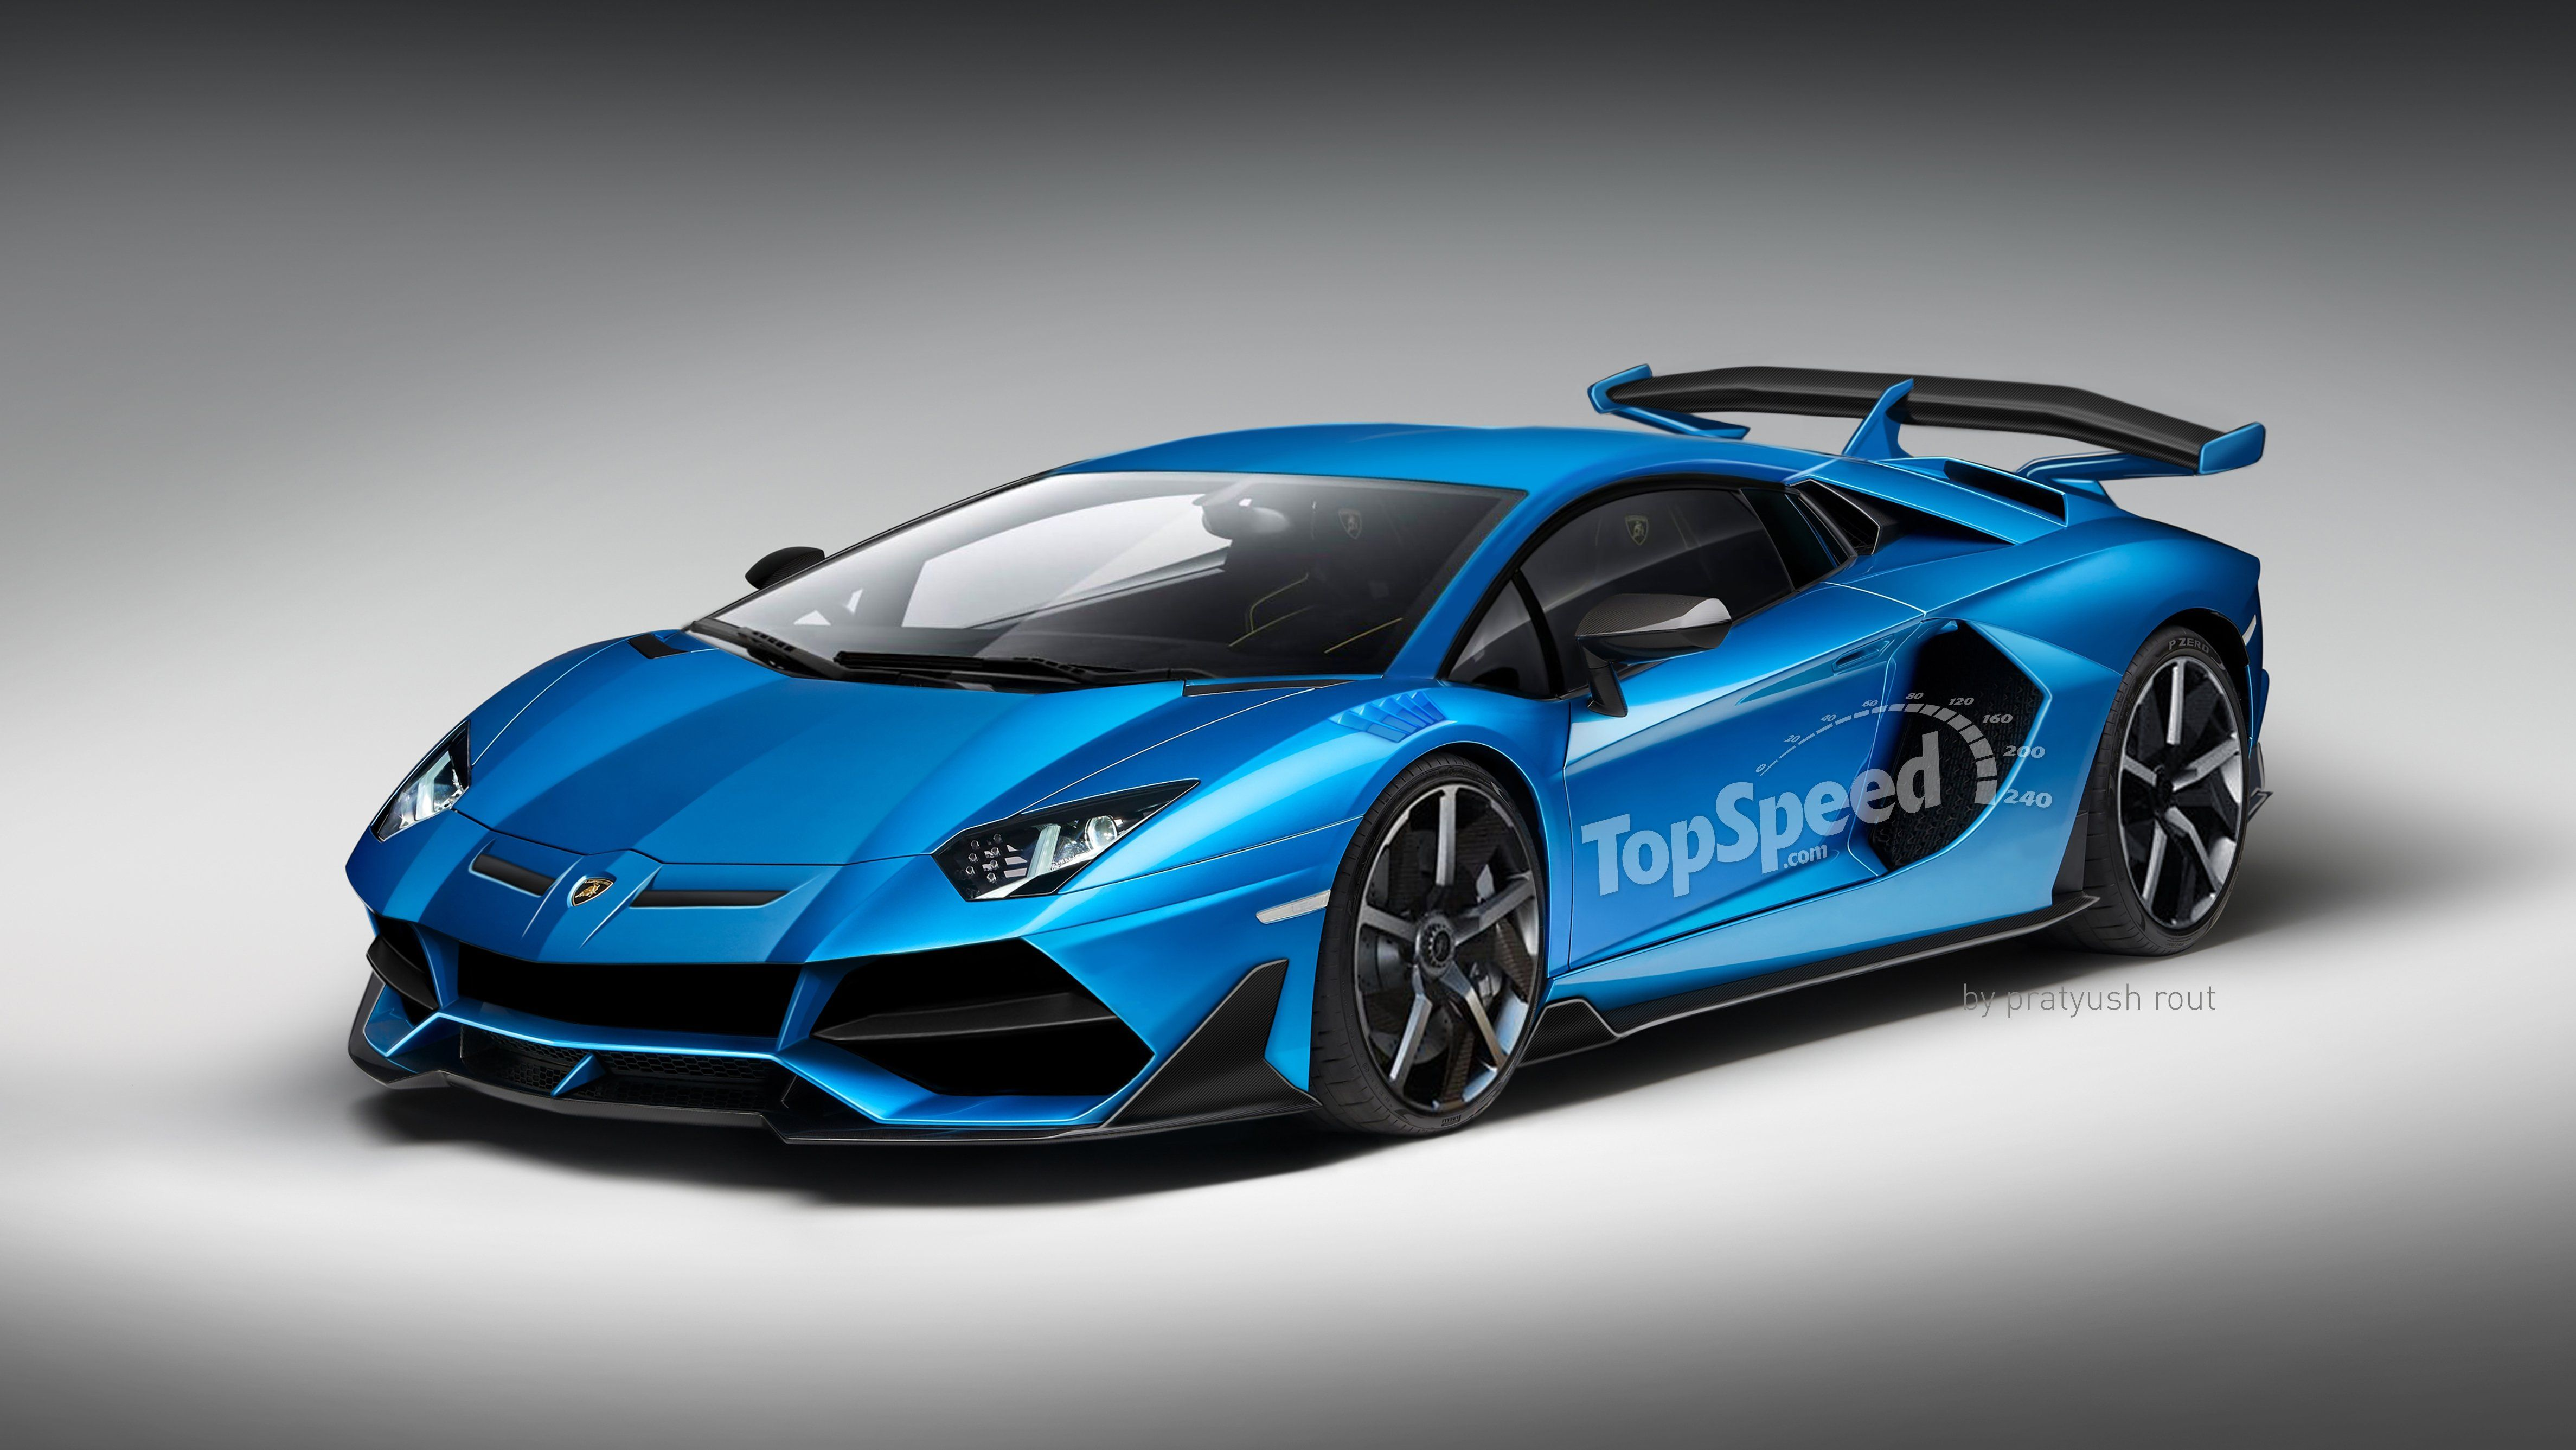 Lamborghini To Apparently Launch Aventador Svj With Nurburgring Lap